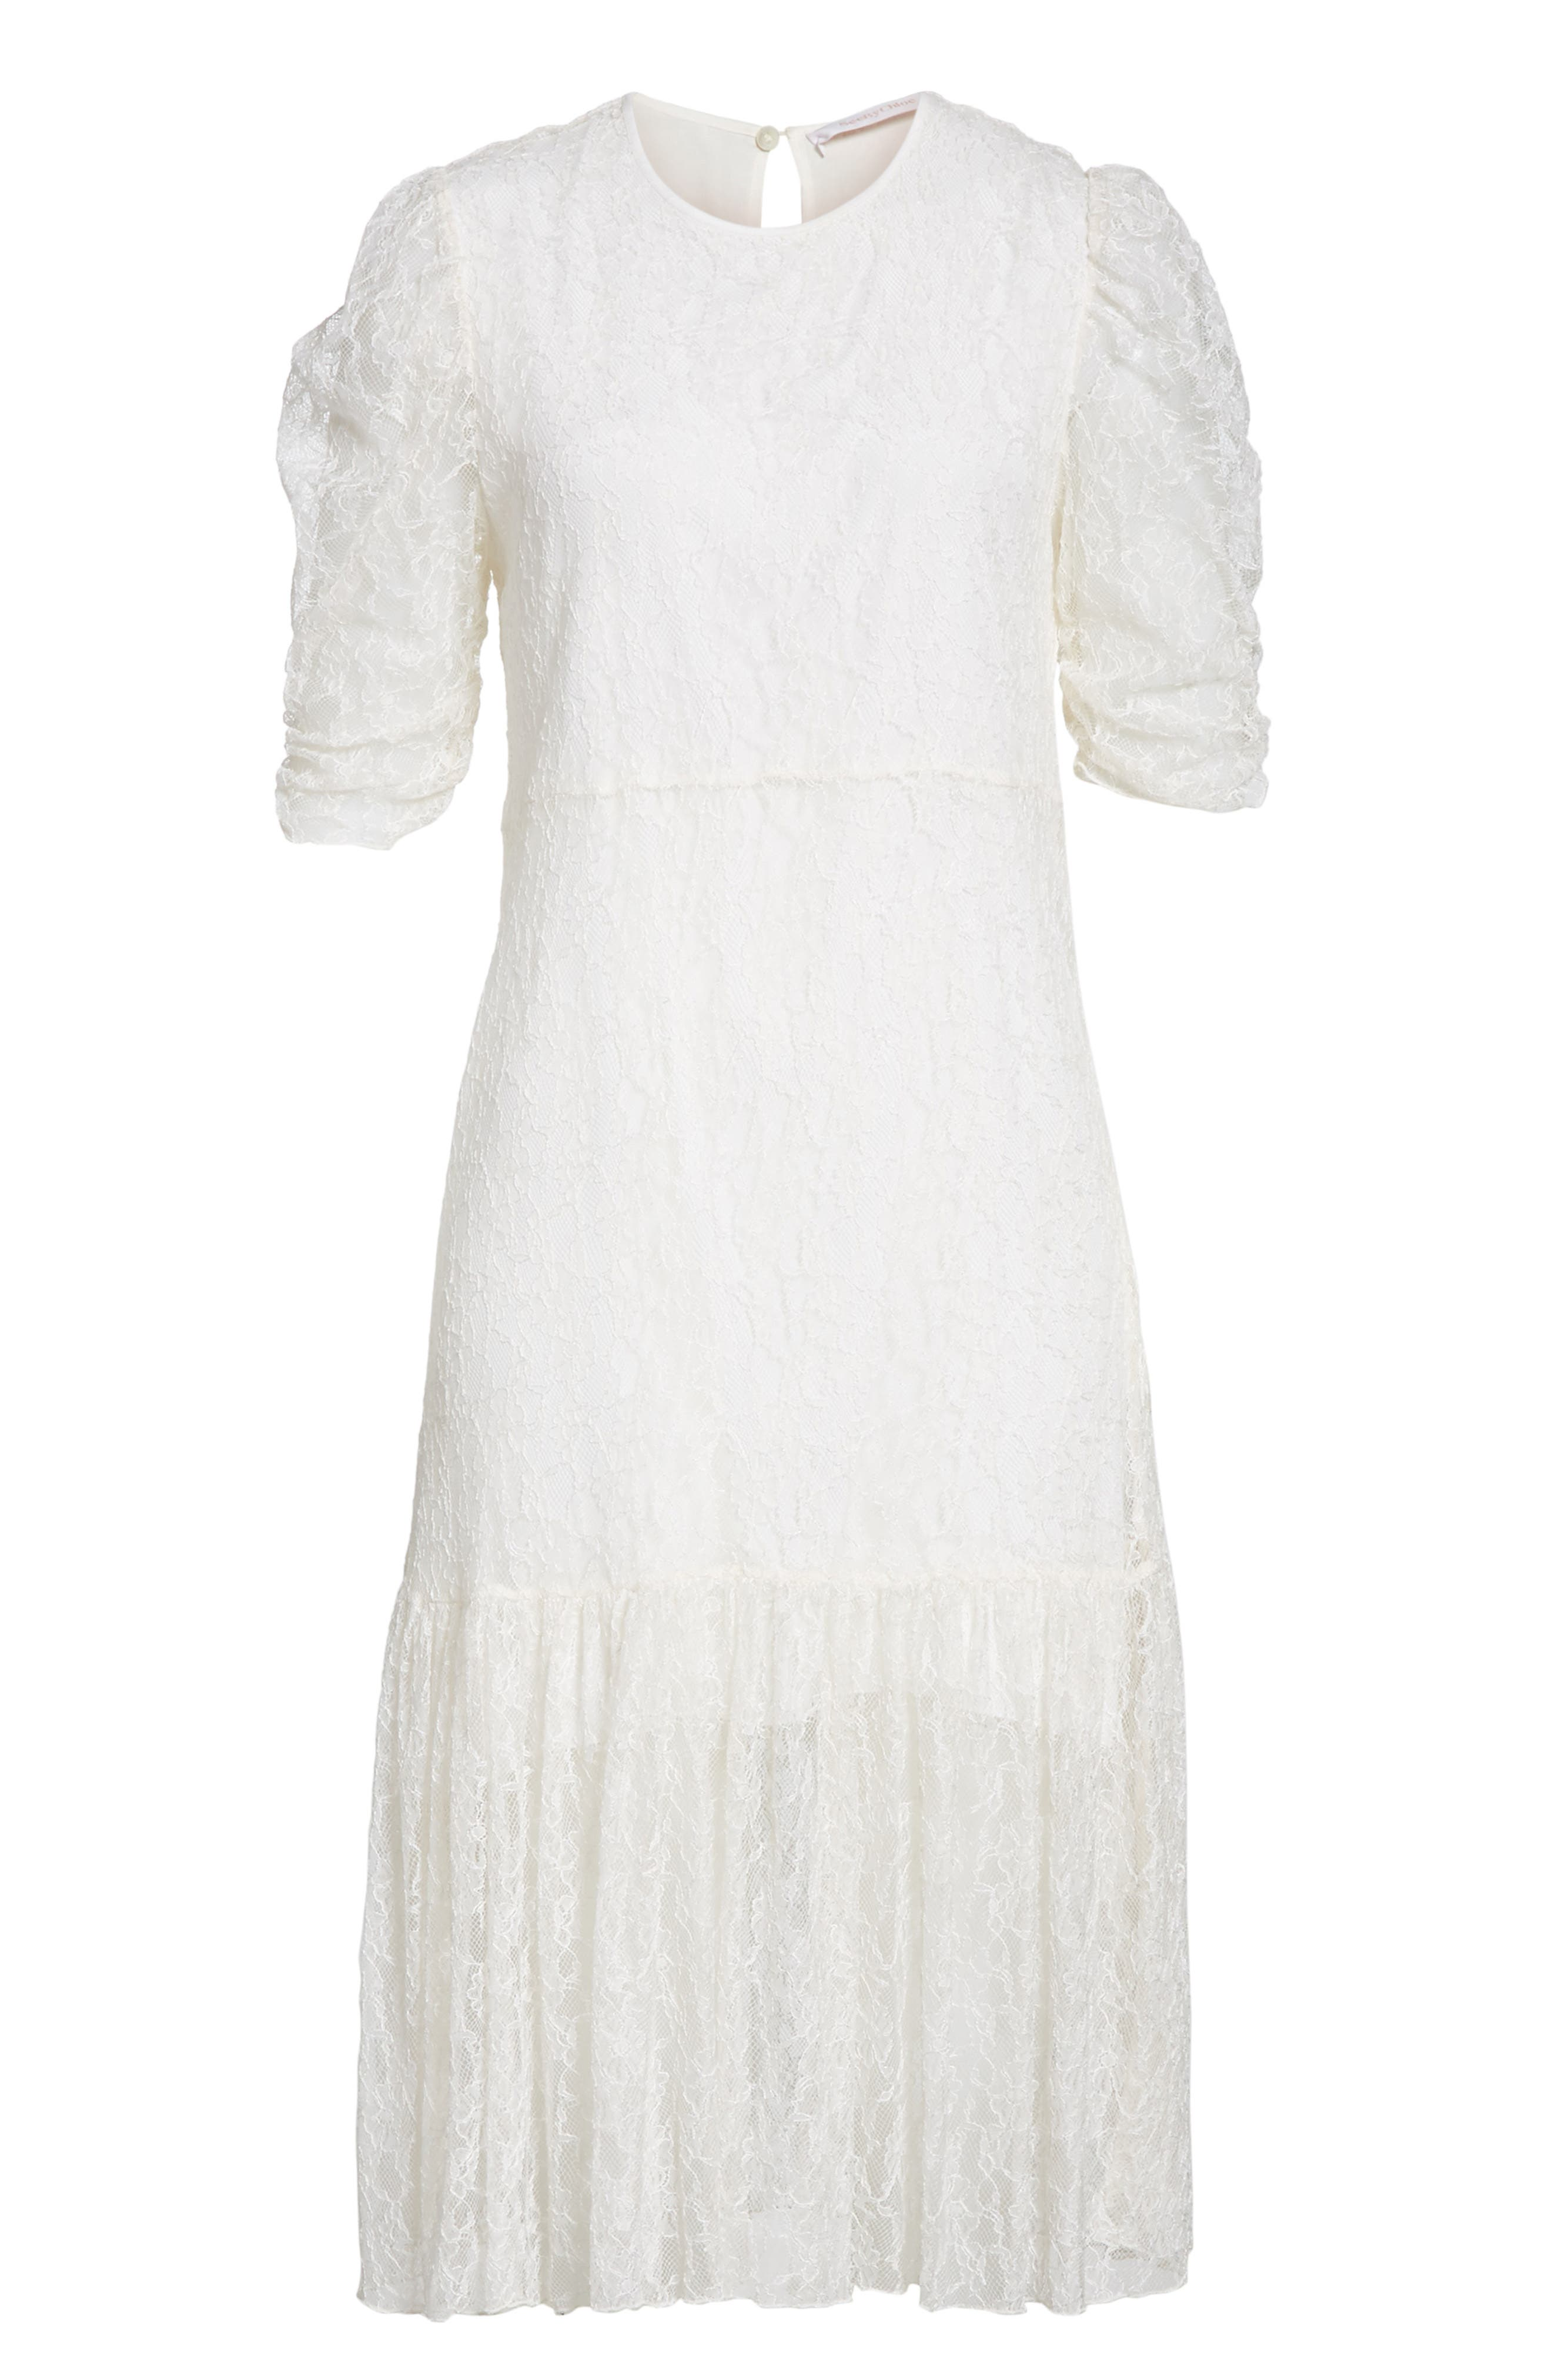 Lace Dress,                             Alternate thumbnail 6, color,                             WHITE